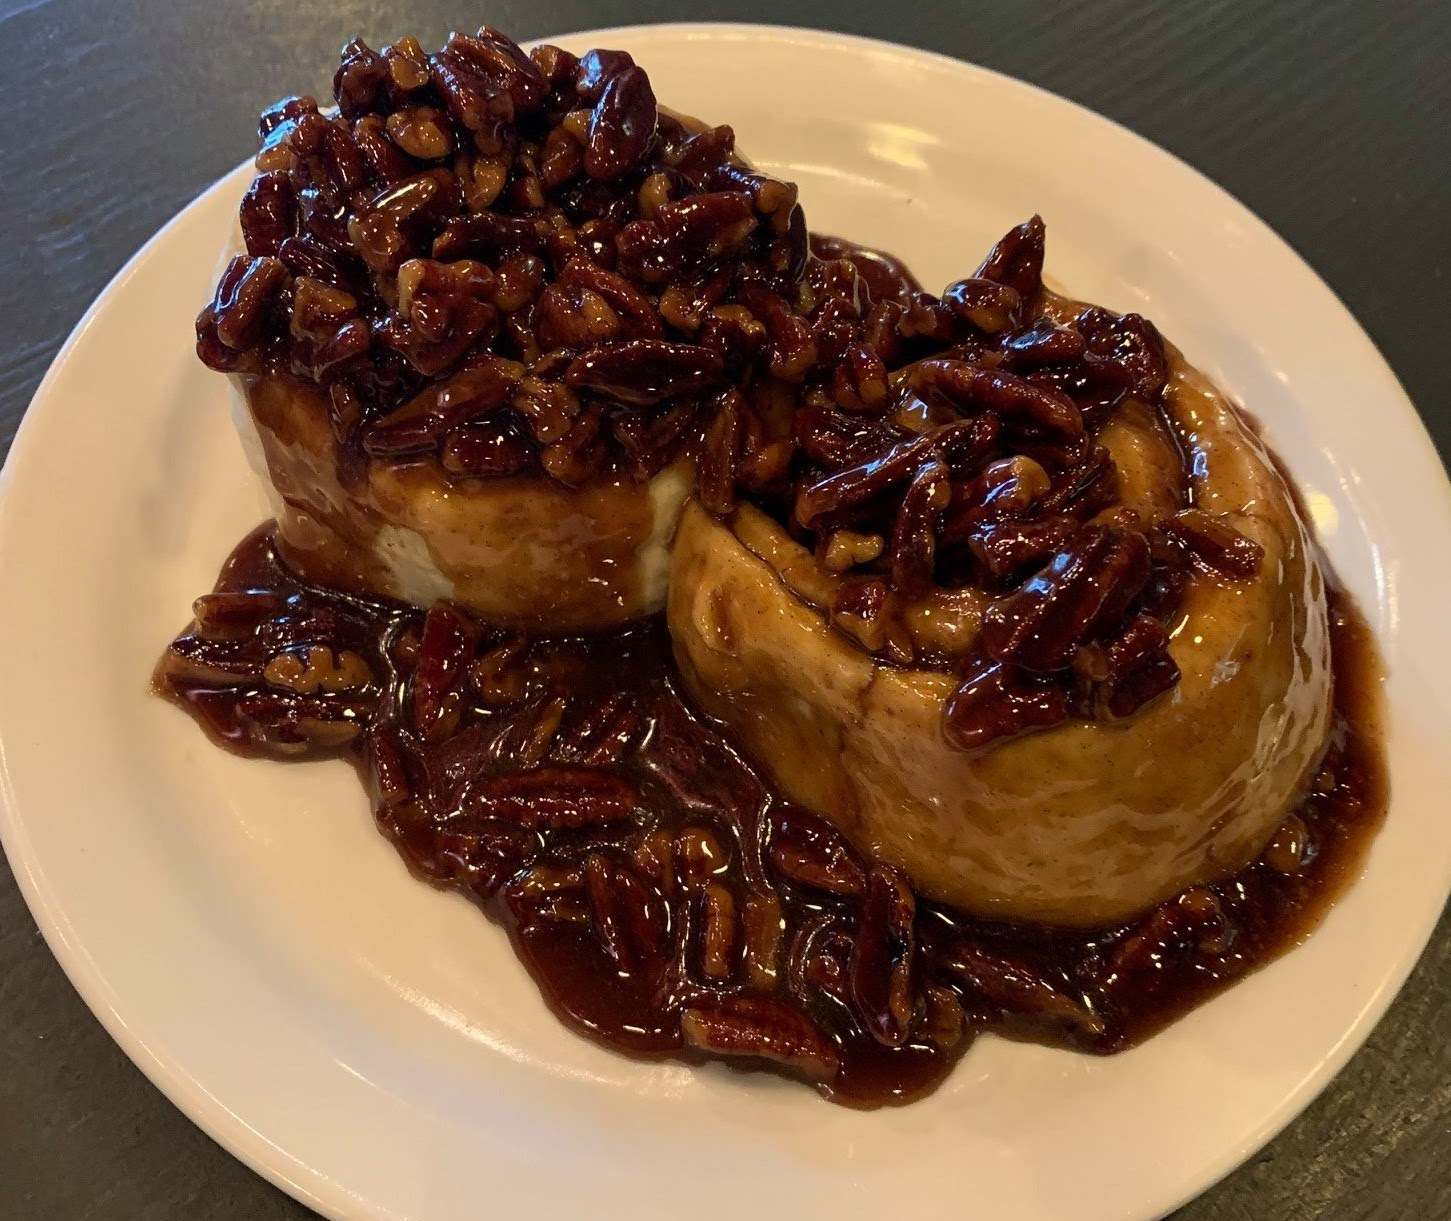 Photo of sticky pecan buns from Pat and Gracie's